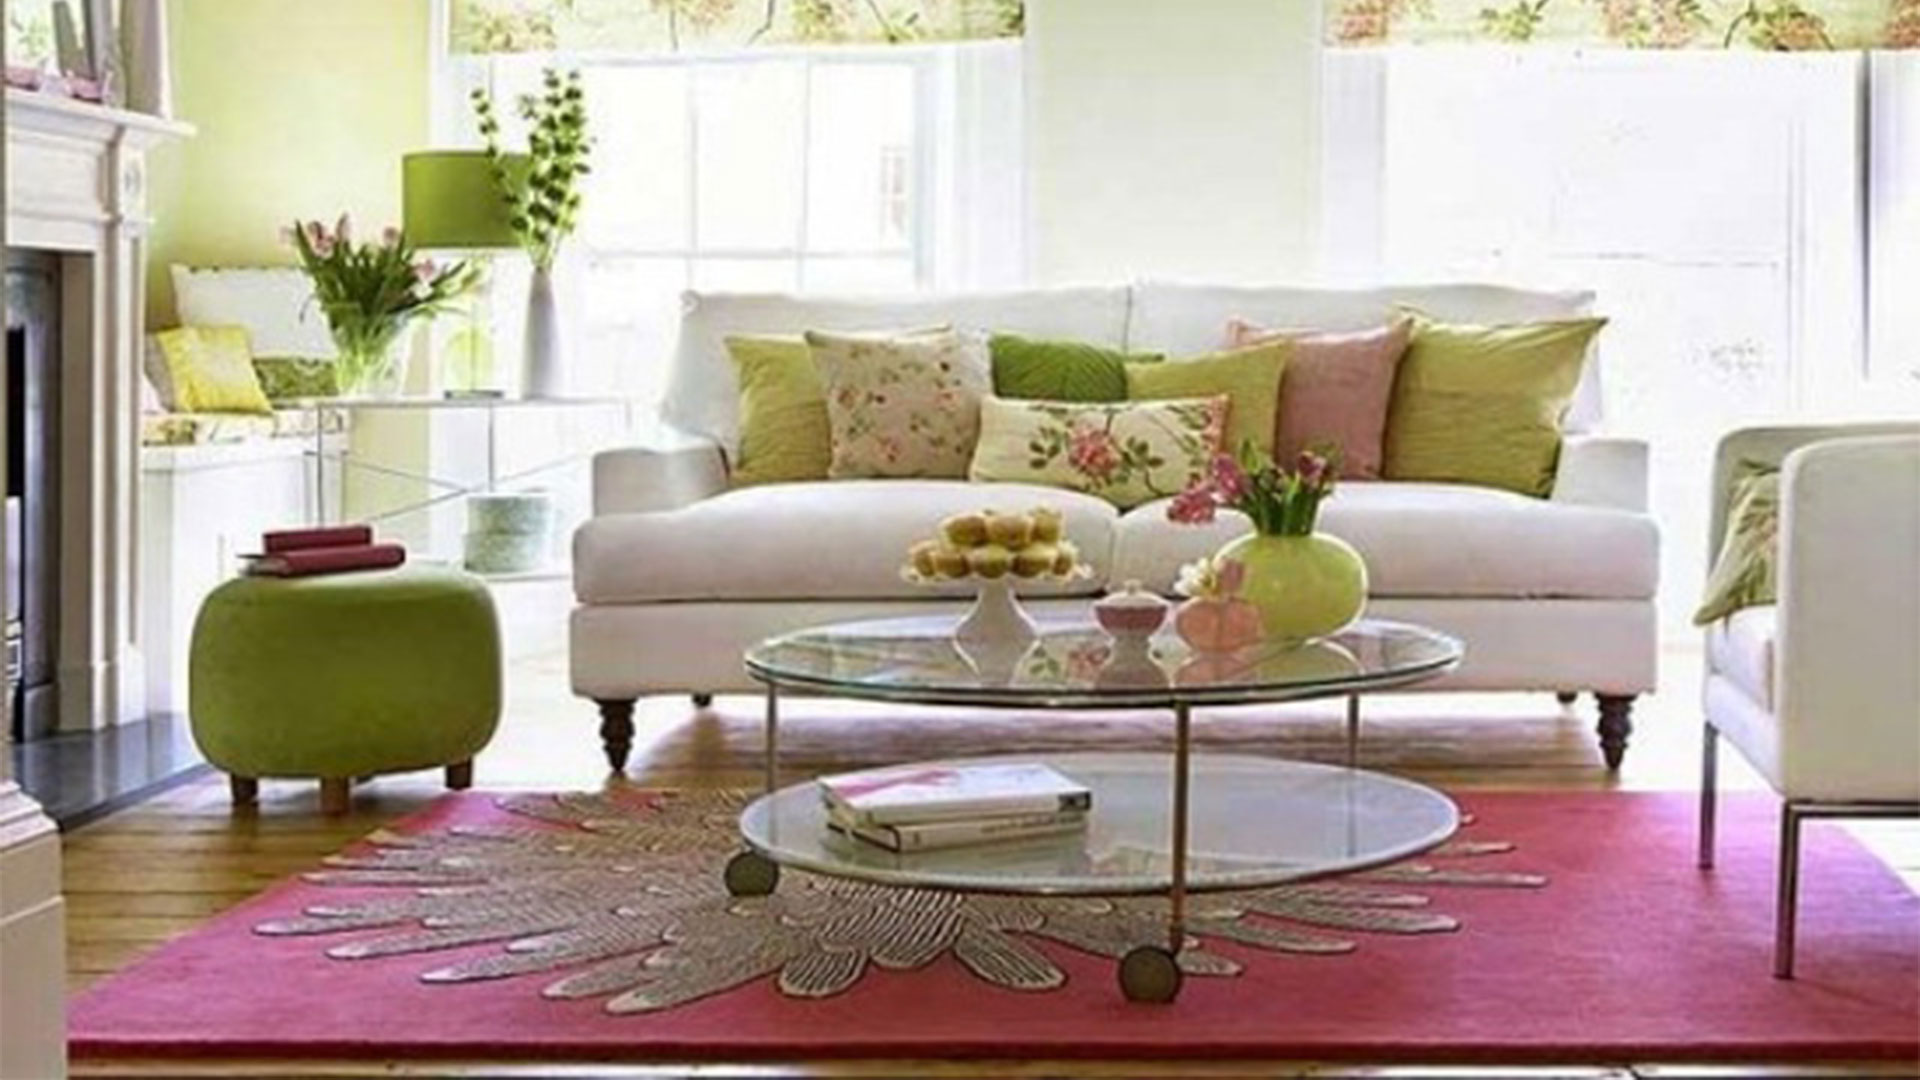 36 living room decorating ideas that smells like spring Design ideas living room